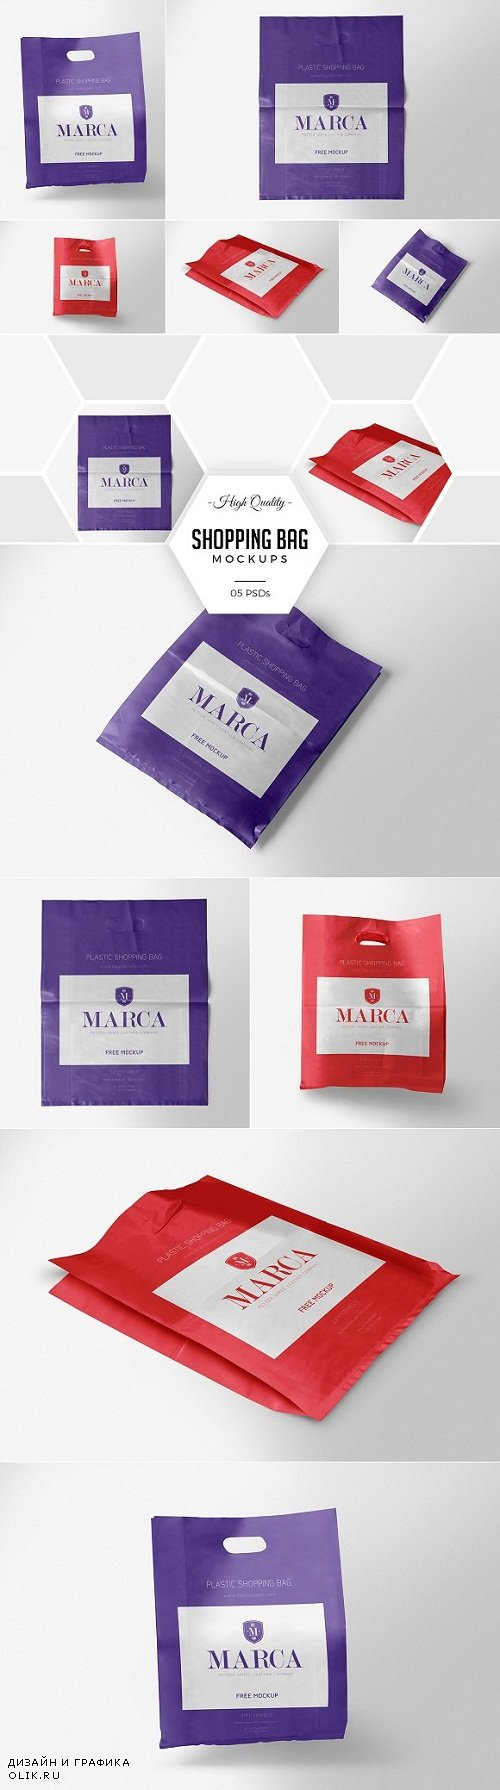 Shopping Bag Mockups 2949883